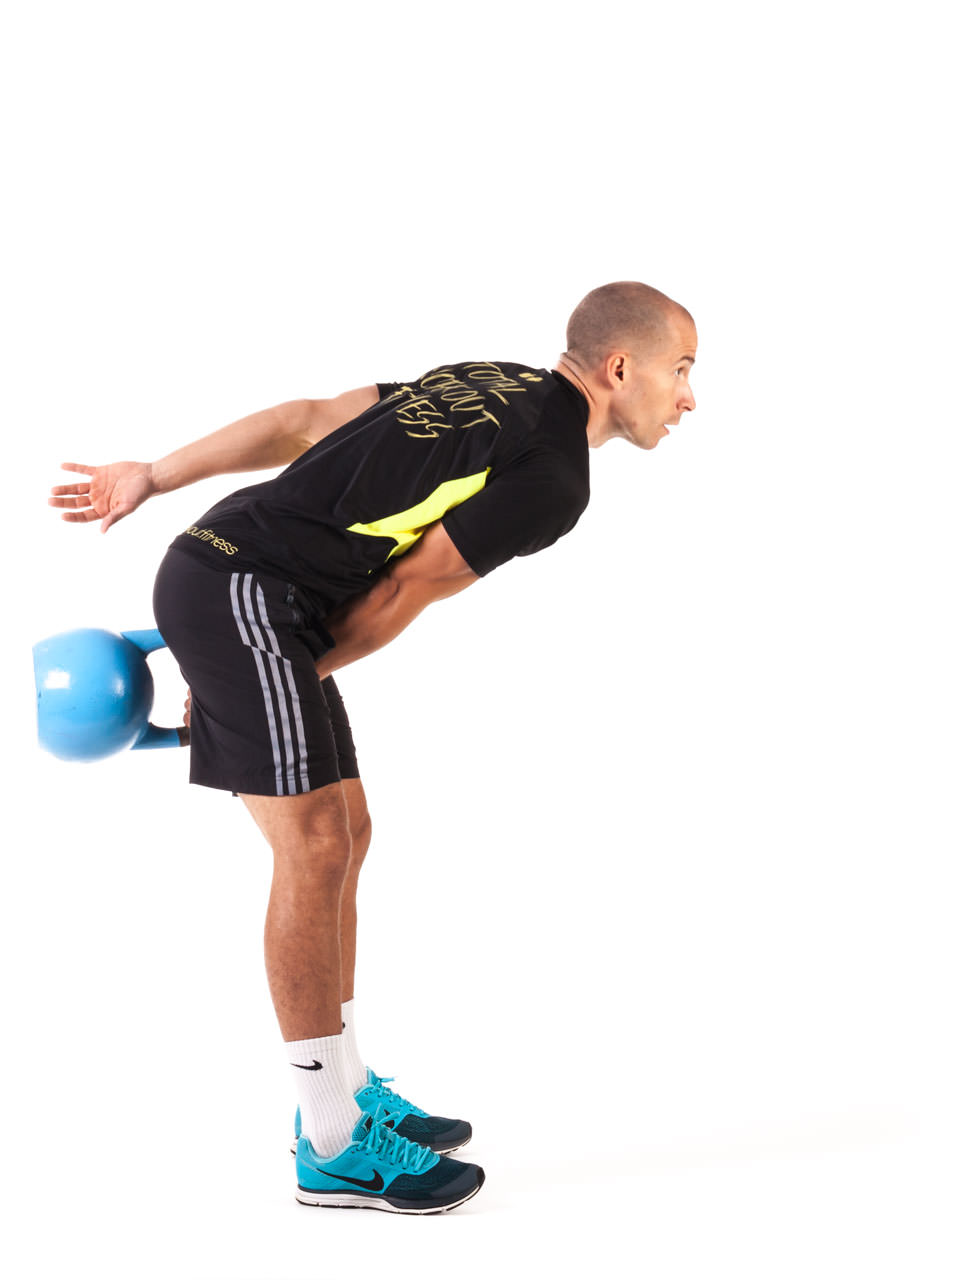 One-Arm Kettlebell Swing frame #8